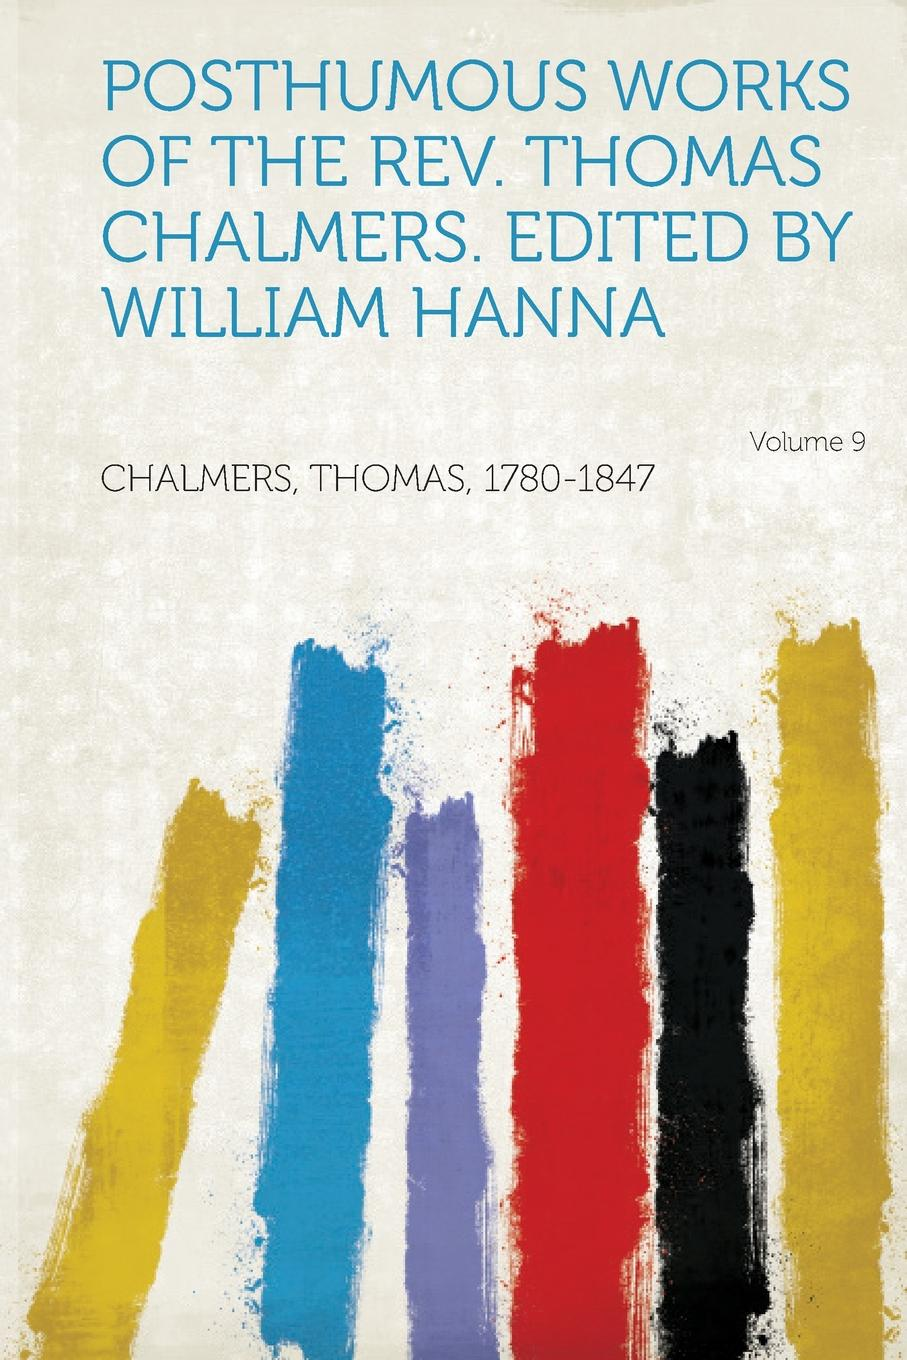 Posthumous Works of the REV. Thomas Chalmers. Edited by William Hanna Volume 9